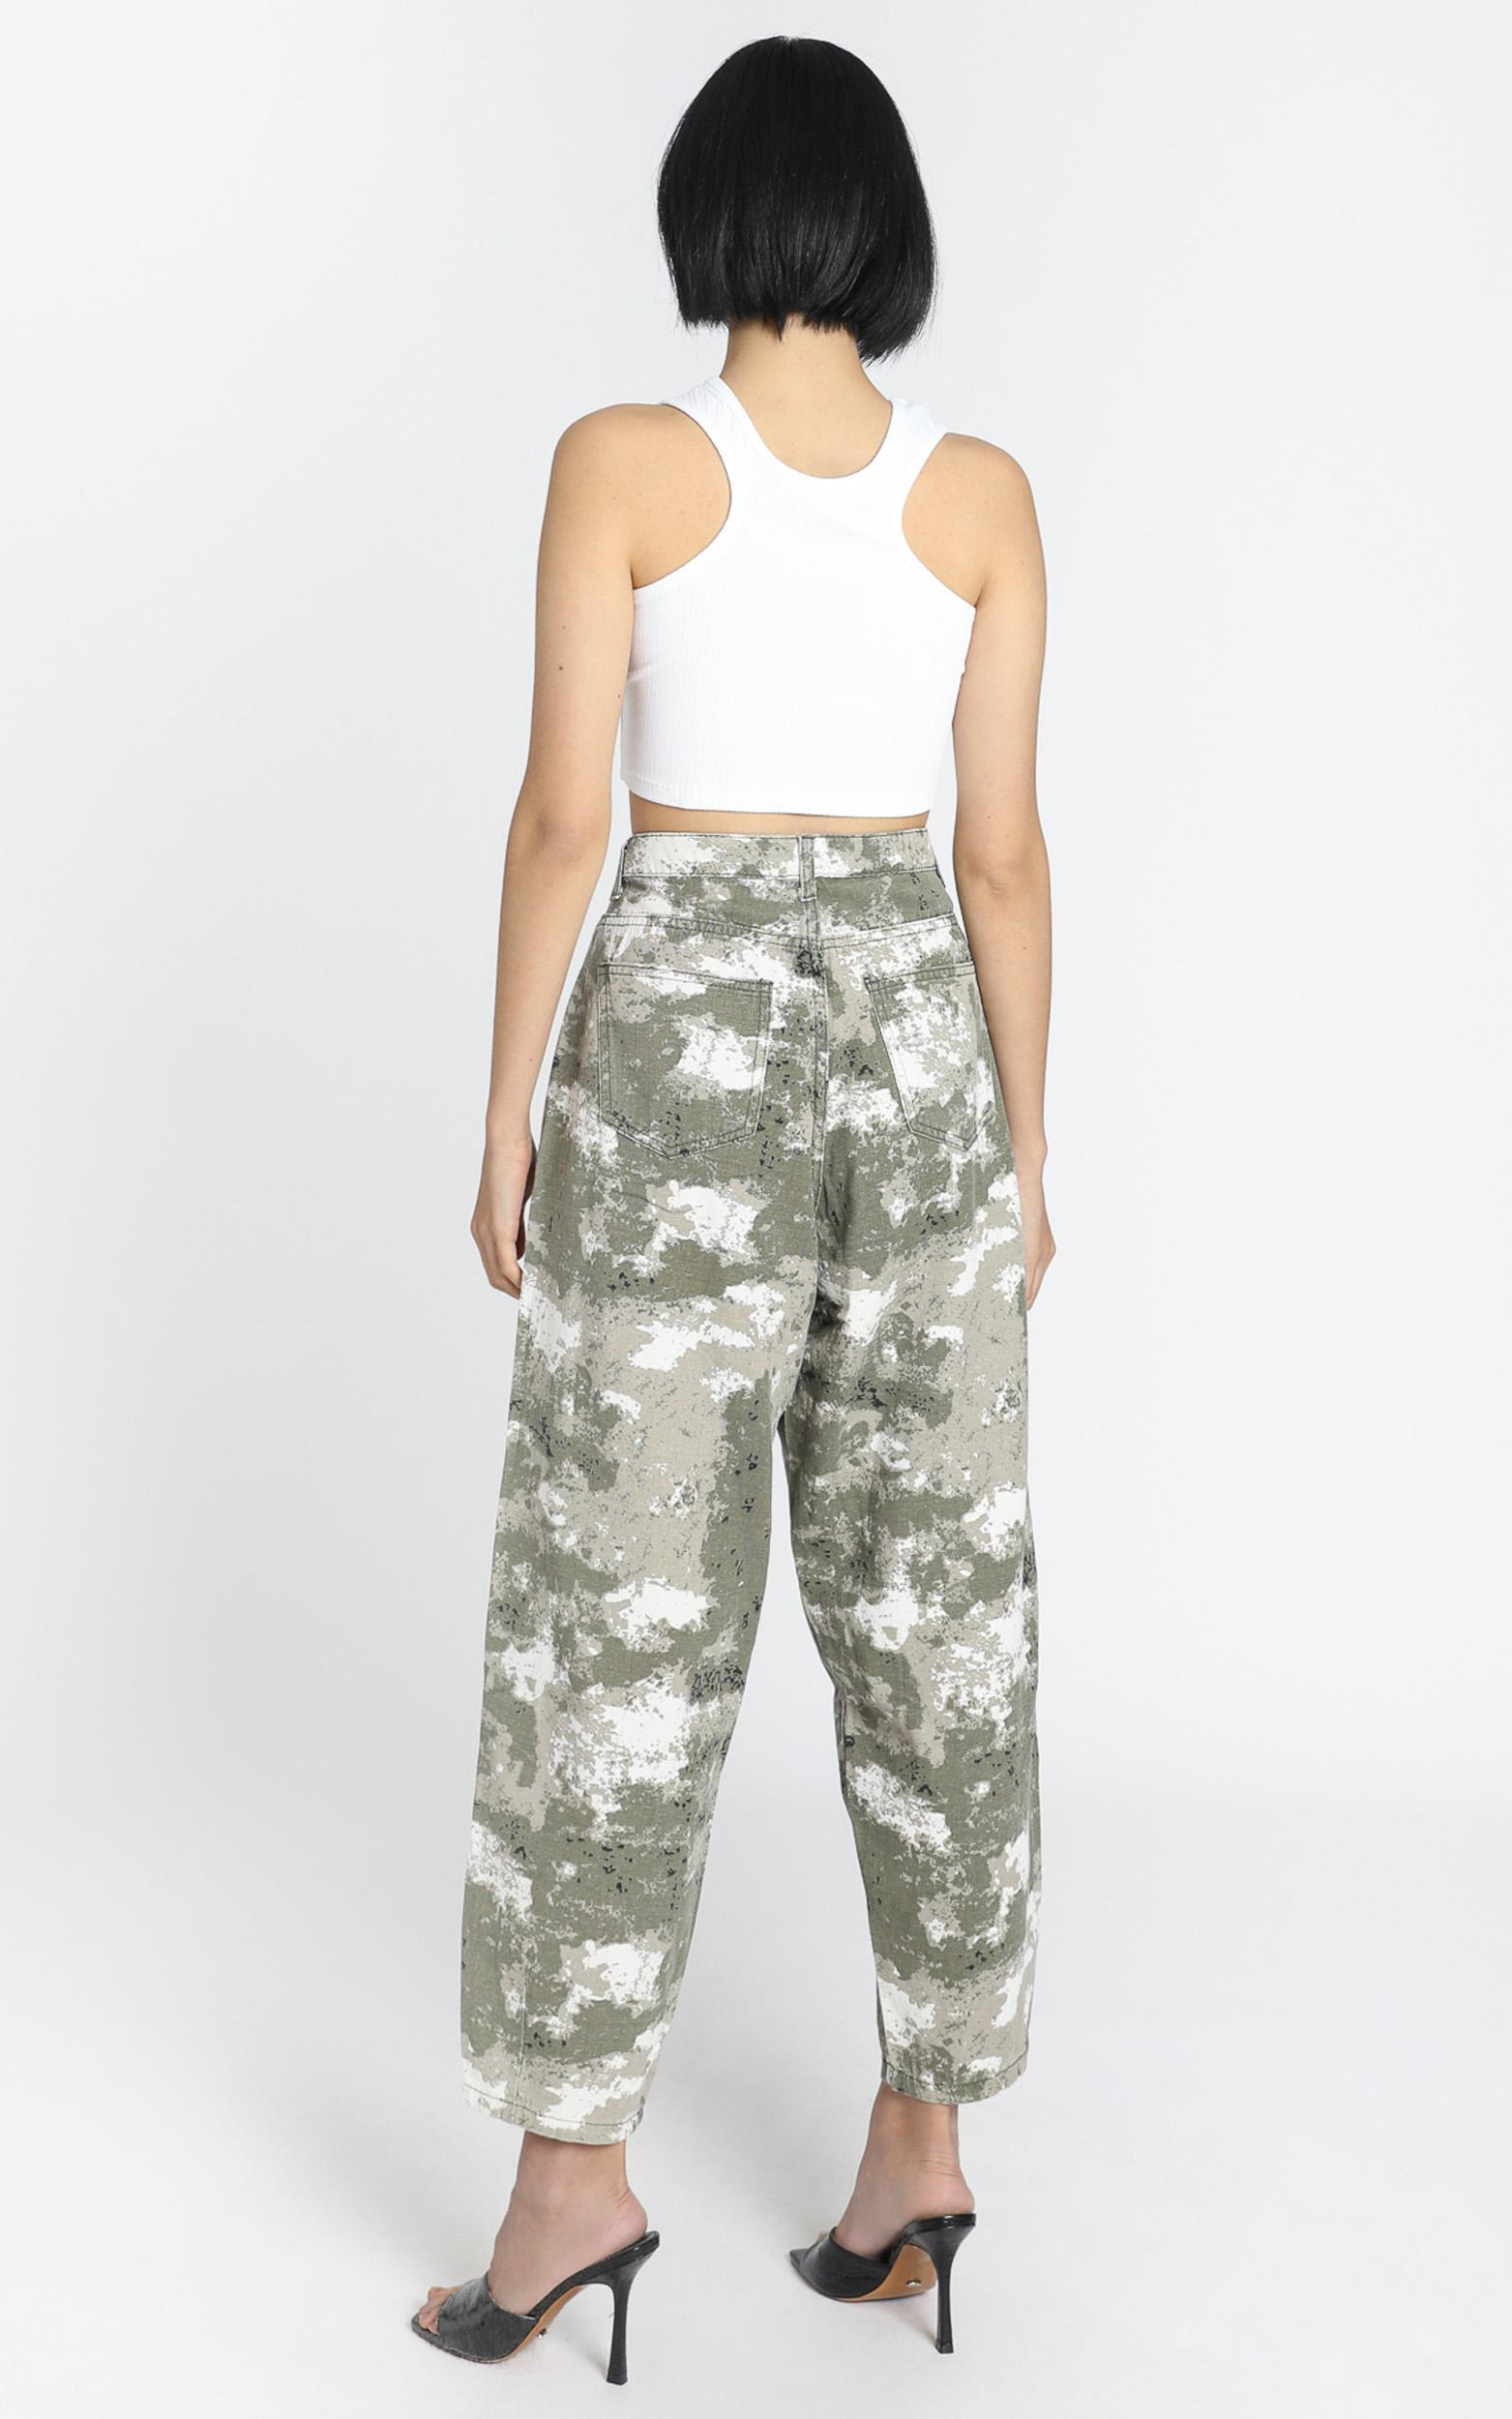 Lioness - On My Way Denim Jeans in Green Camo - 6 (XS), Green, hi-res image number null